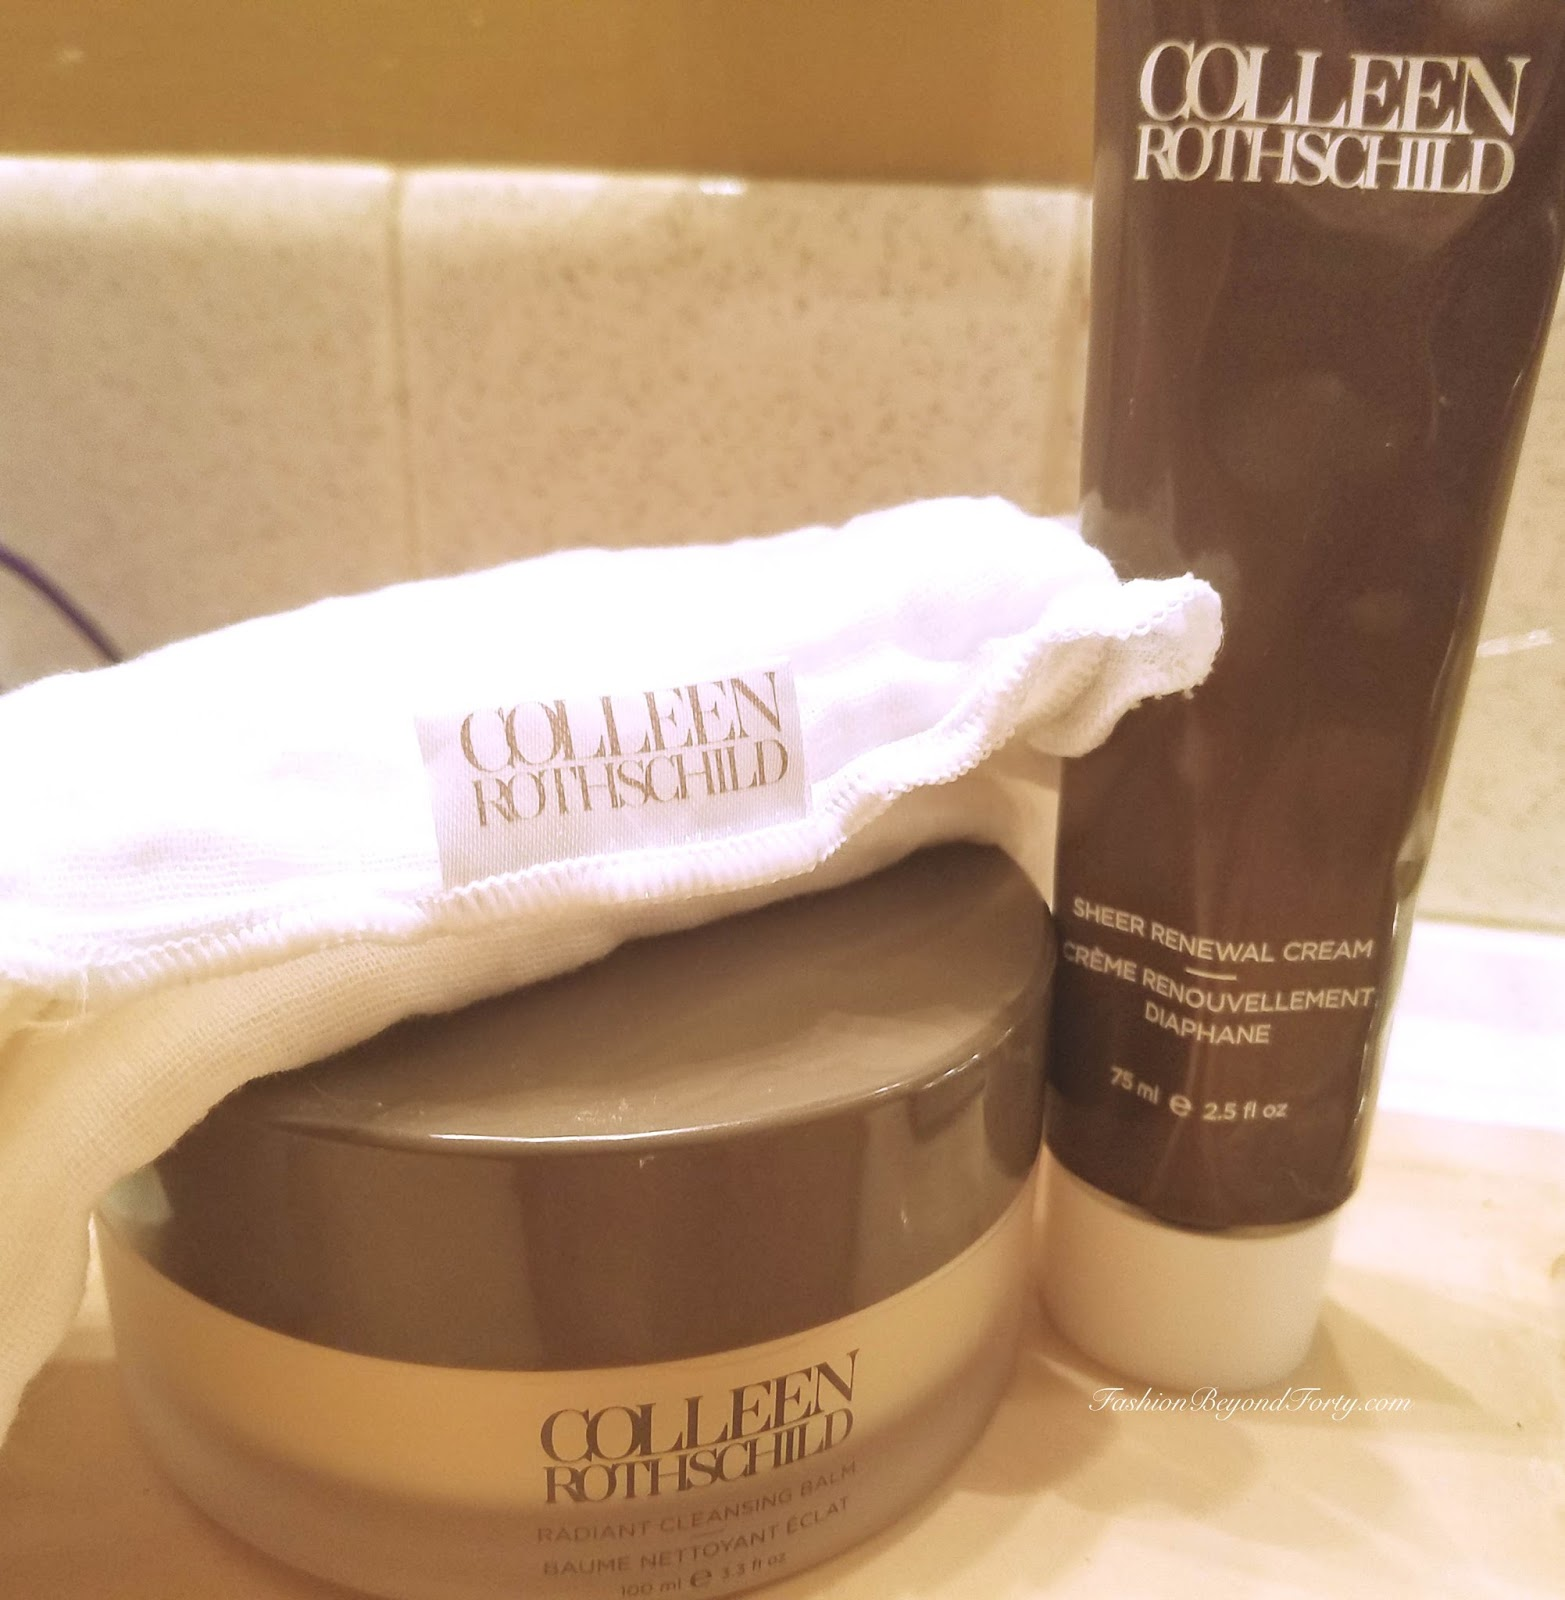 Top 3 Skincare Picks Of 2016 #3 Colleen Rothschild